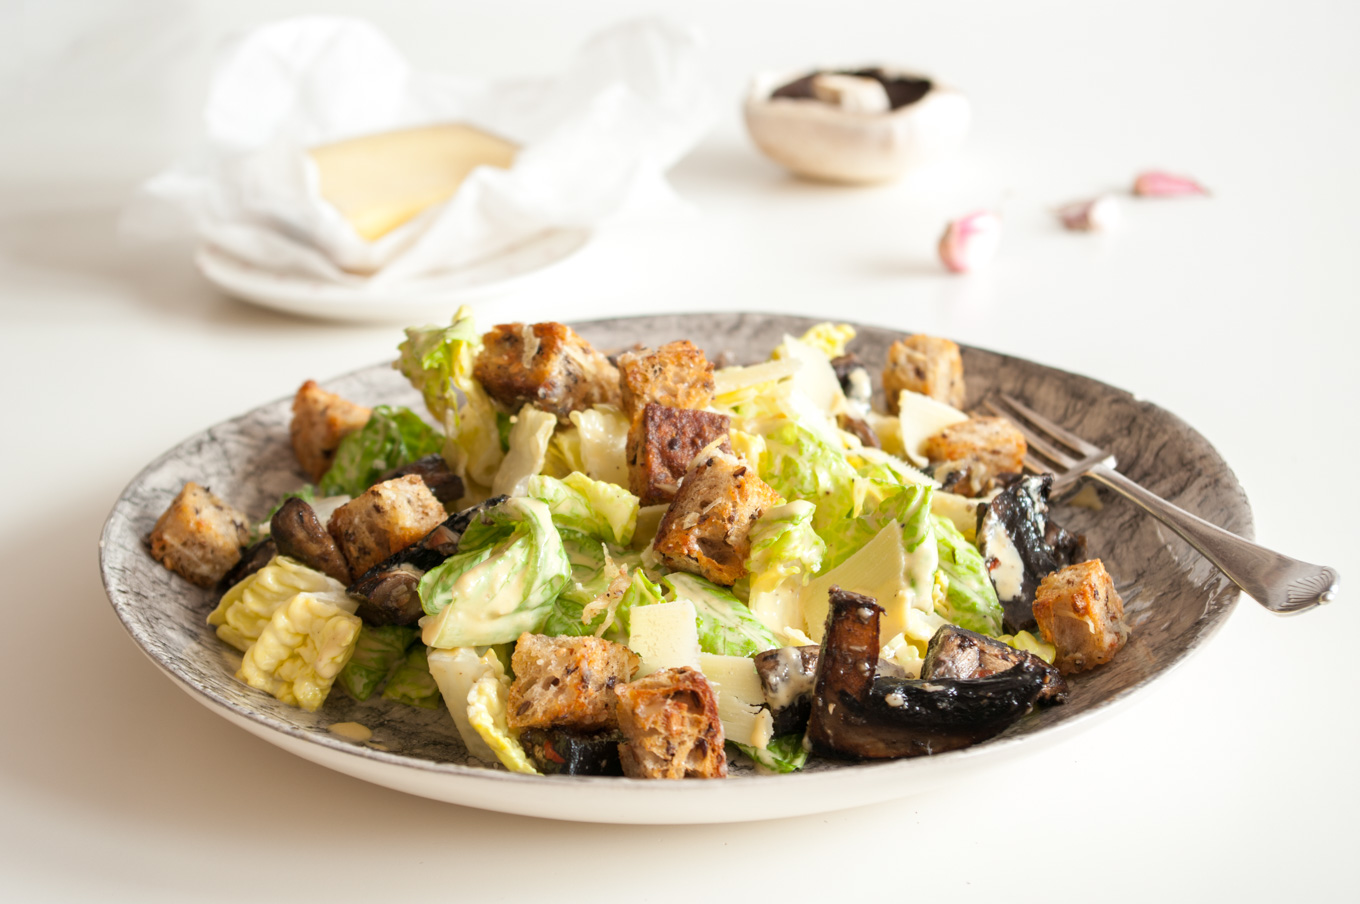 Gruyère Caesar Salad with Mushrooms – Creamy homemade Caesar dressing with roasted garlic, Gruyère sourdough croutons and marinated mushrooms, all tossed with crunchy romaine lettuce. A hearty autumn salad. By @deliciouscratch | deliciousfromscratch.com